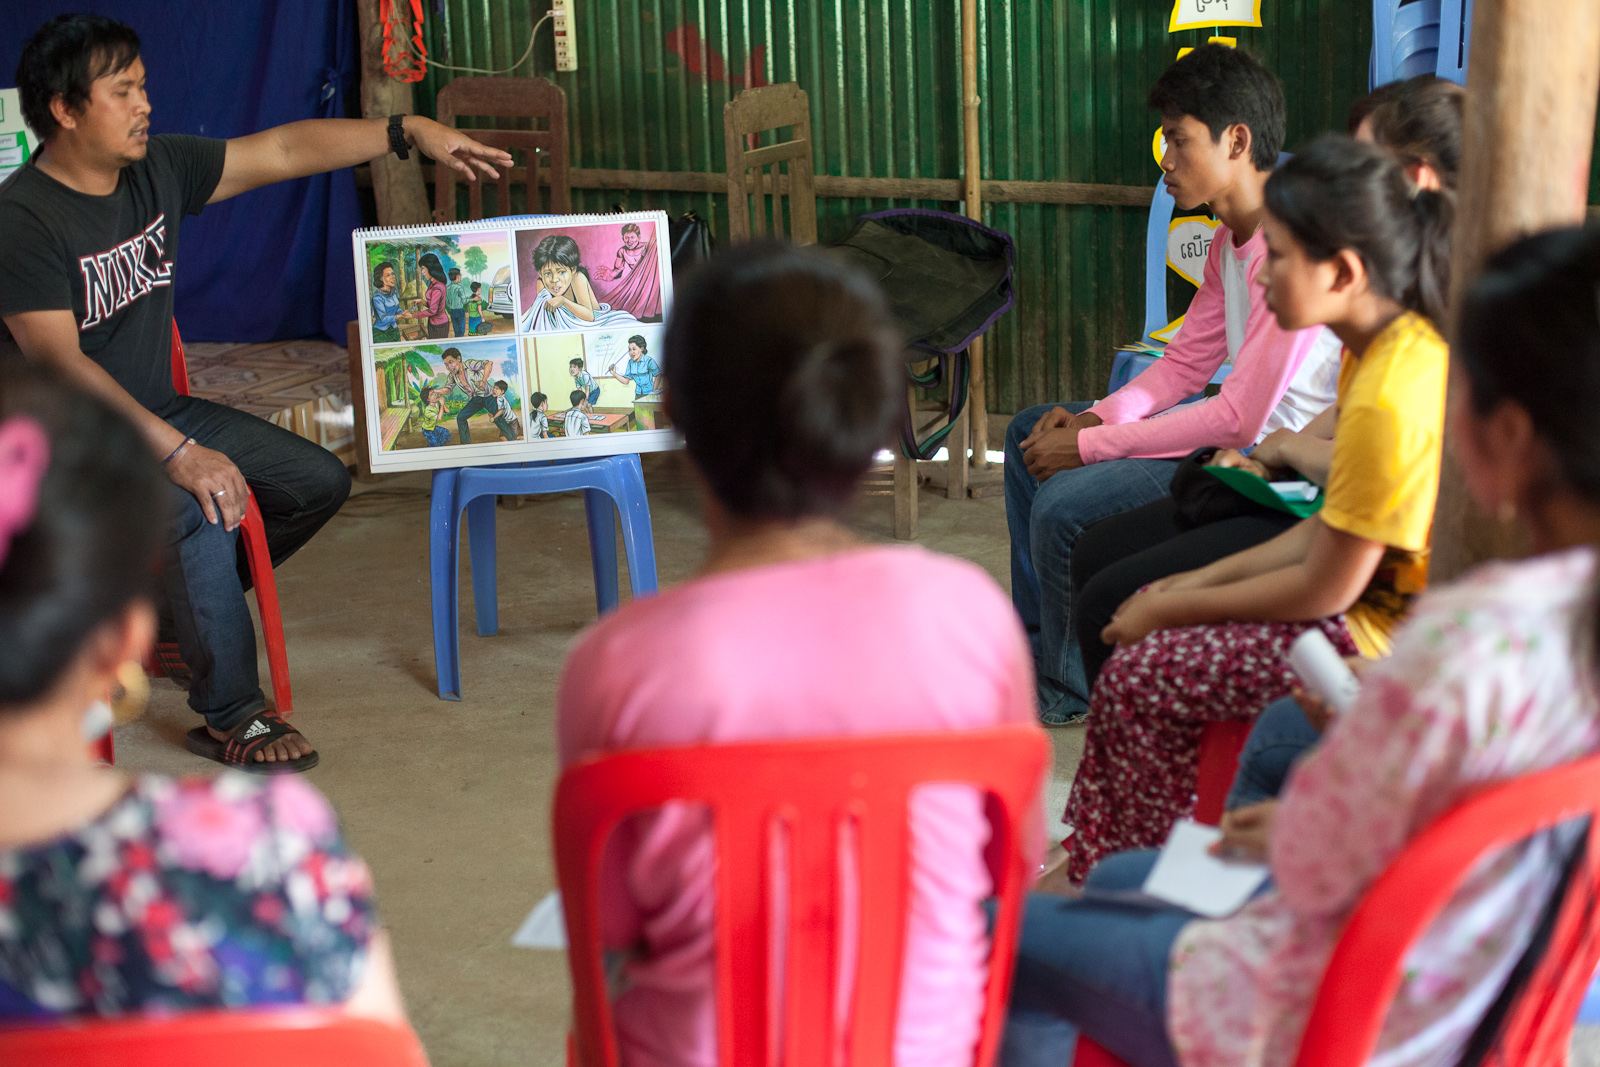 Phearom teaches on how to recognize trafficking or abuse... and how to respond.